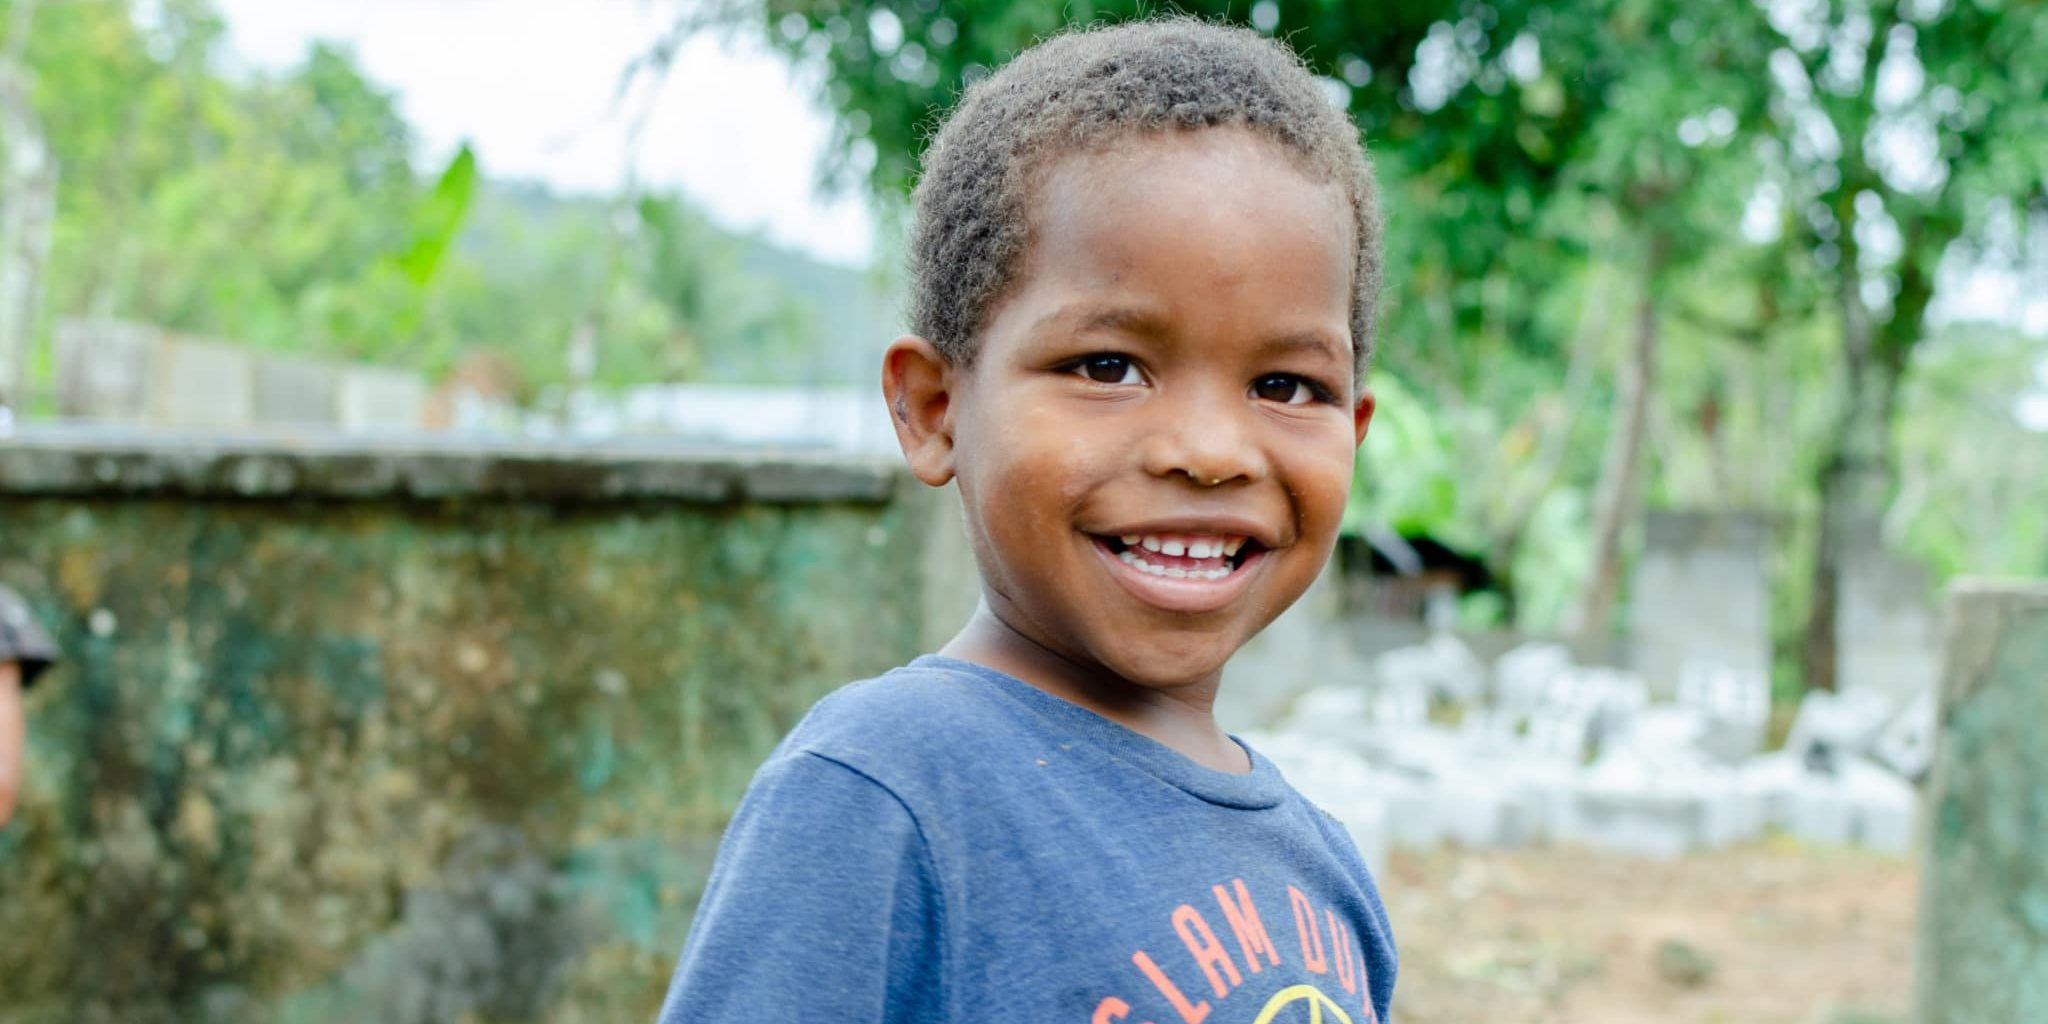 Young boy in Haiti